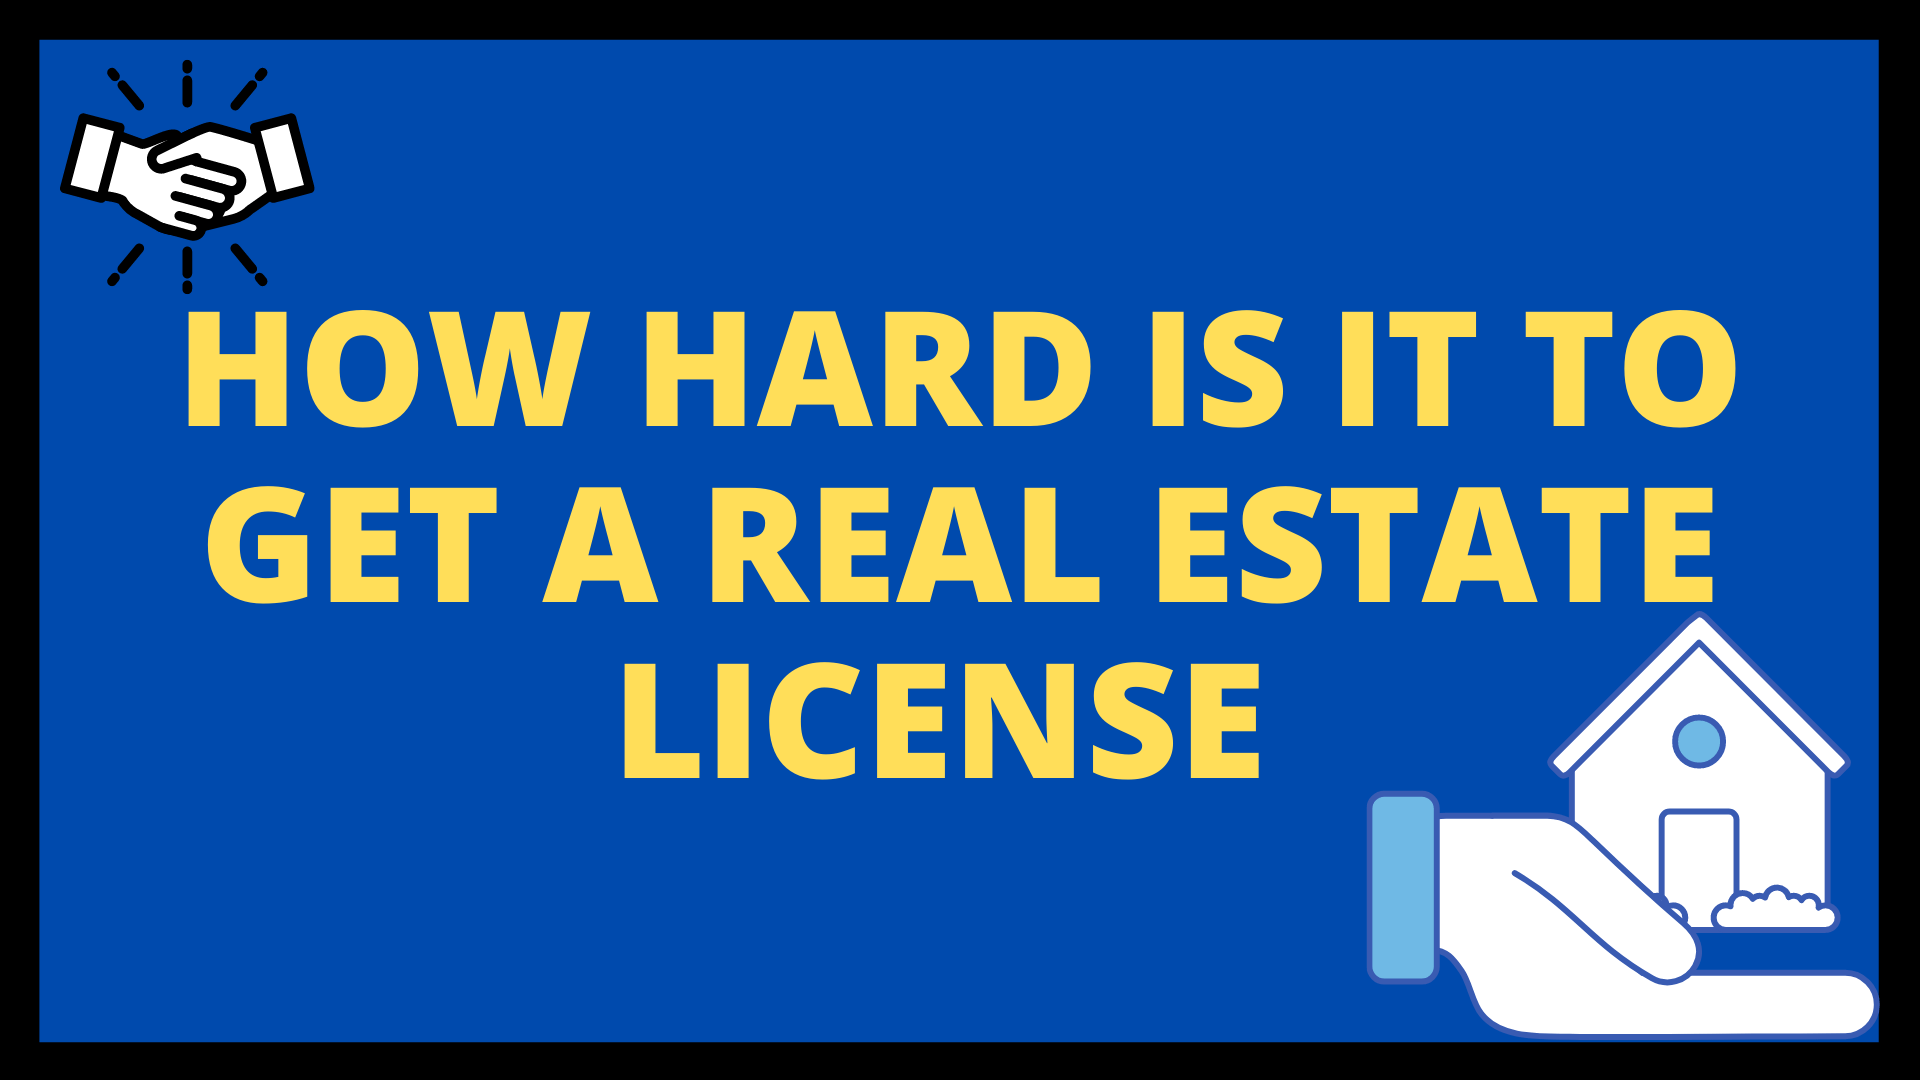 How Hard is it to get a Real Estate License